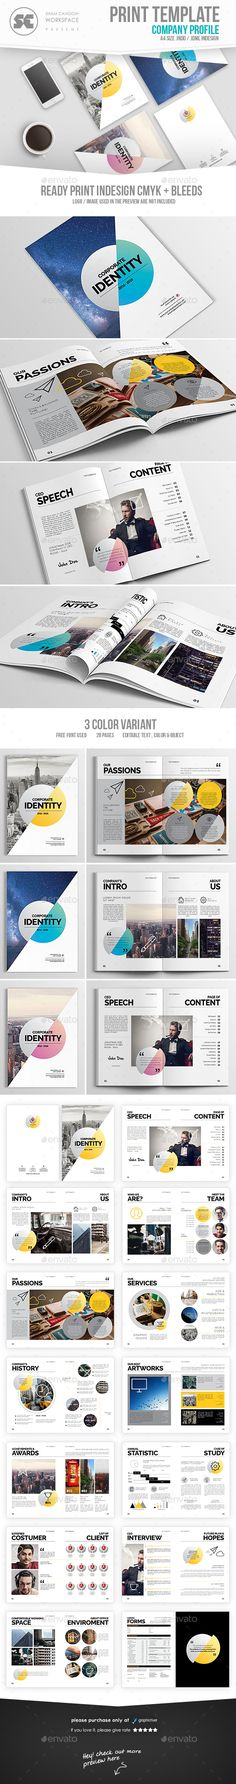 threesixty company profile template Presentation Pinterest - it company profile template